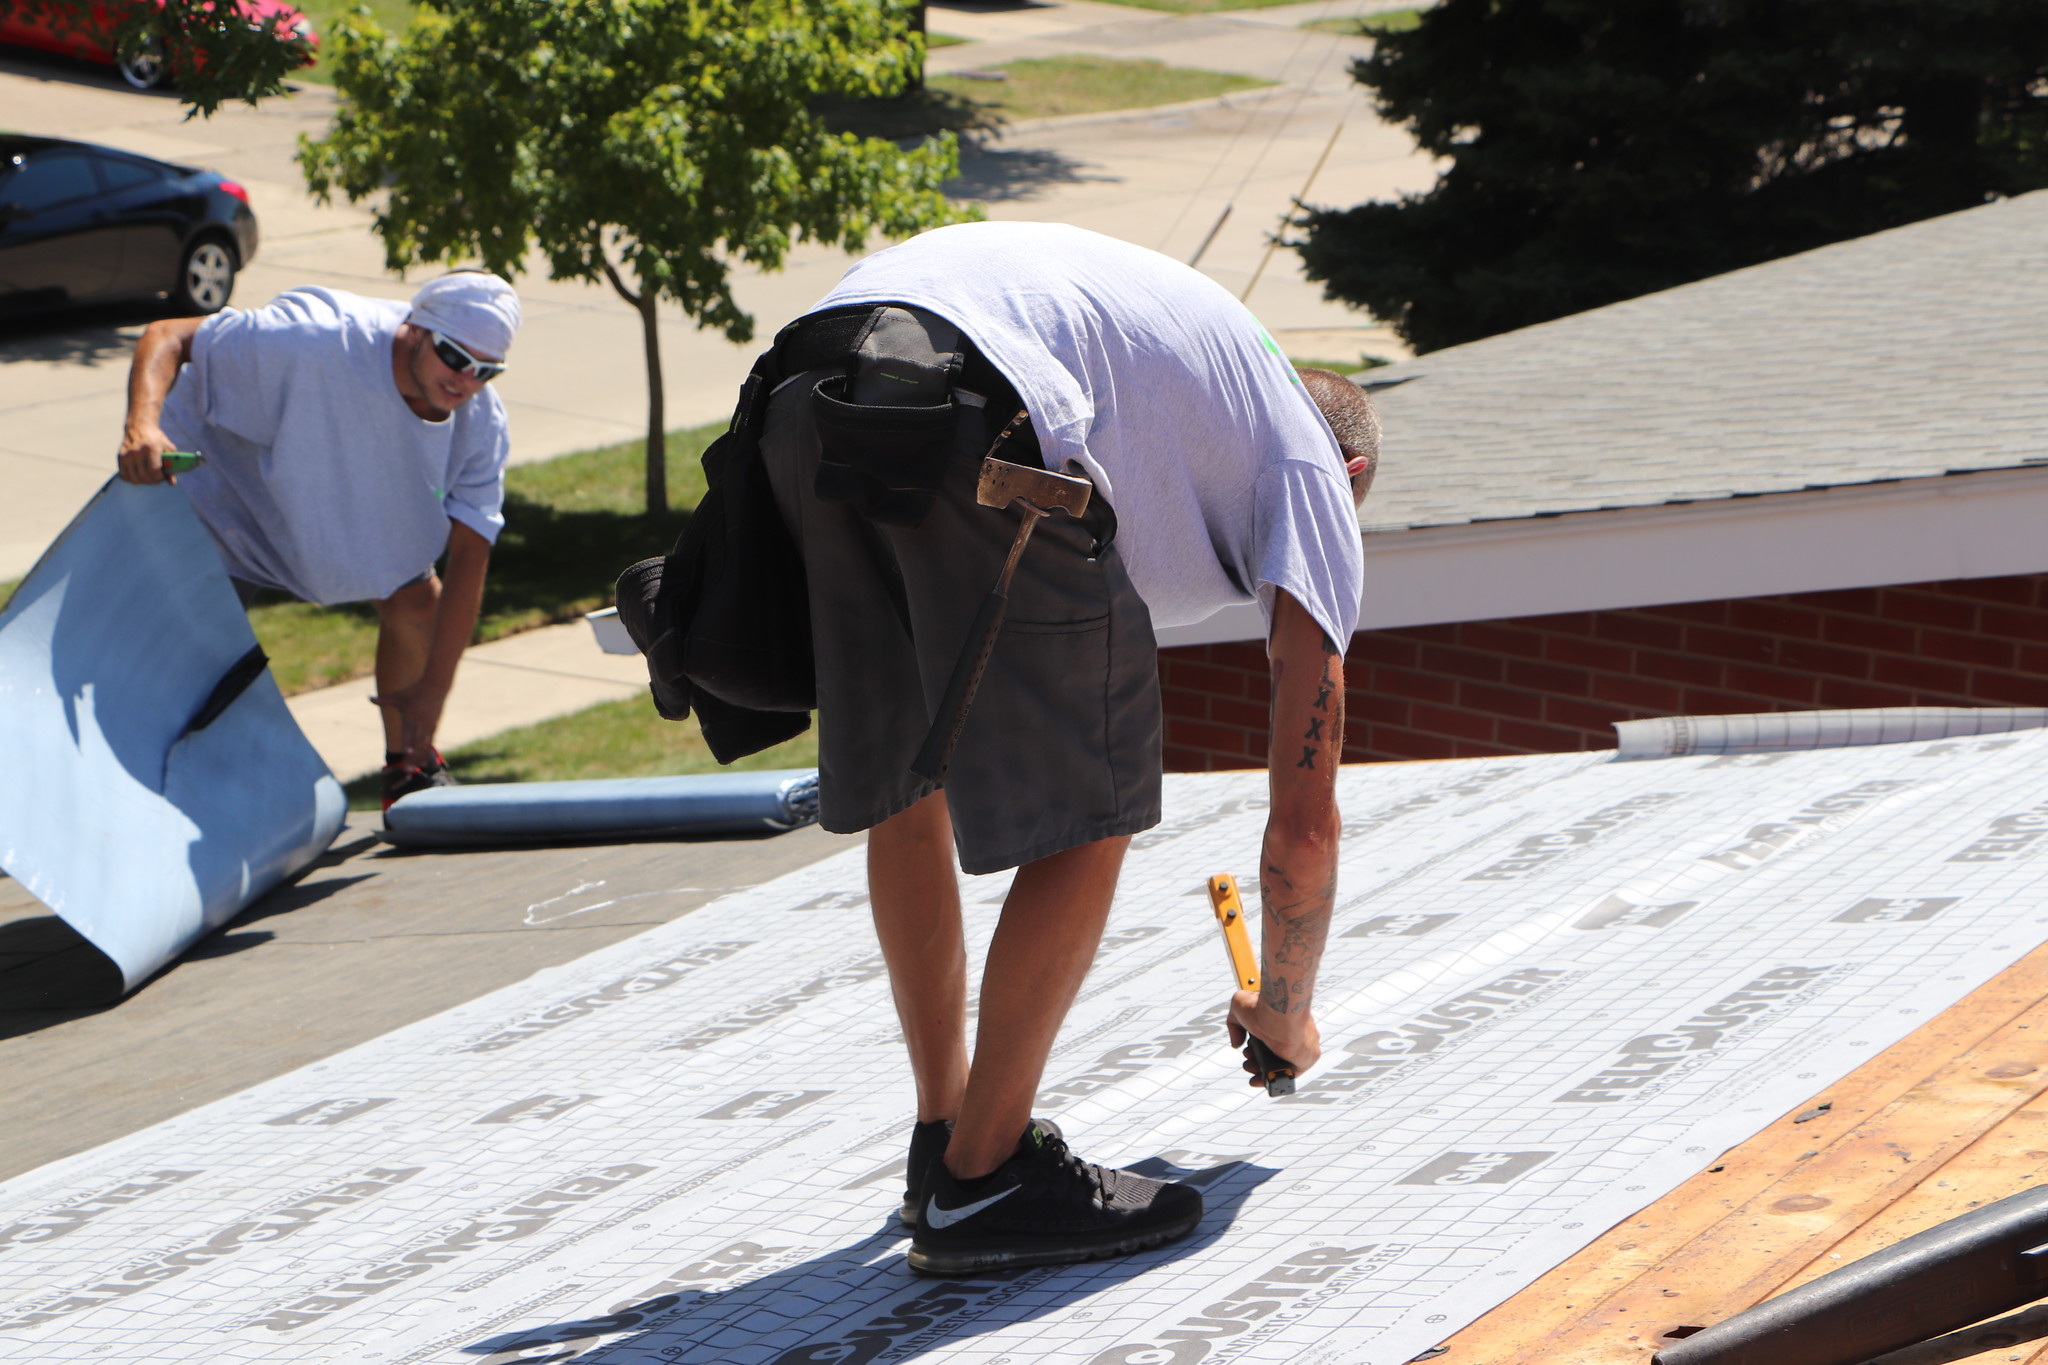 Critical Facts to Consider for Keeping Your Roofing Canton Michigan Safe